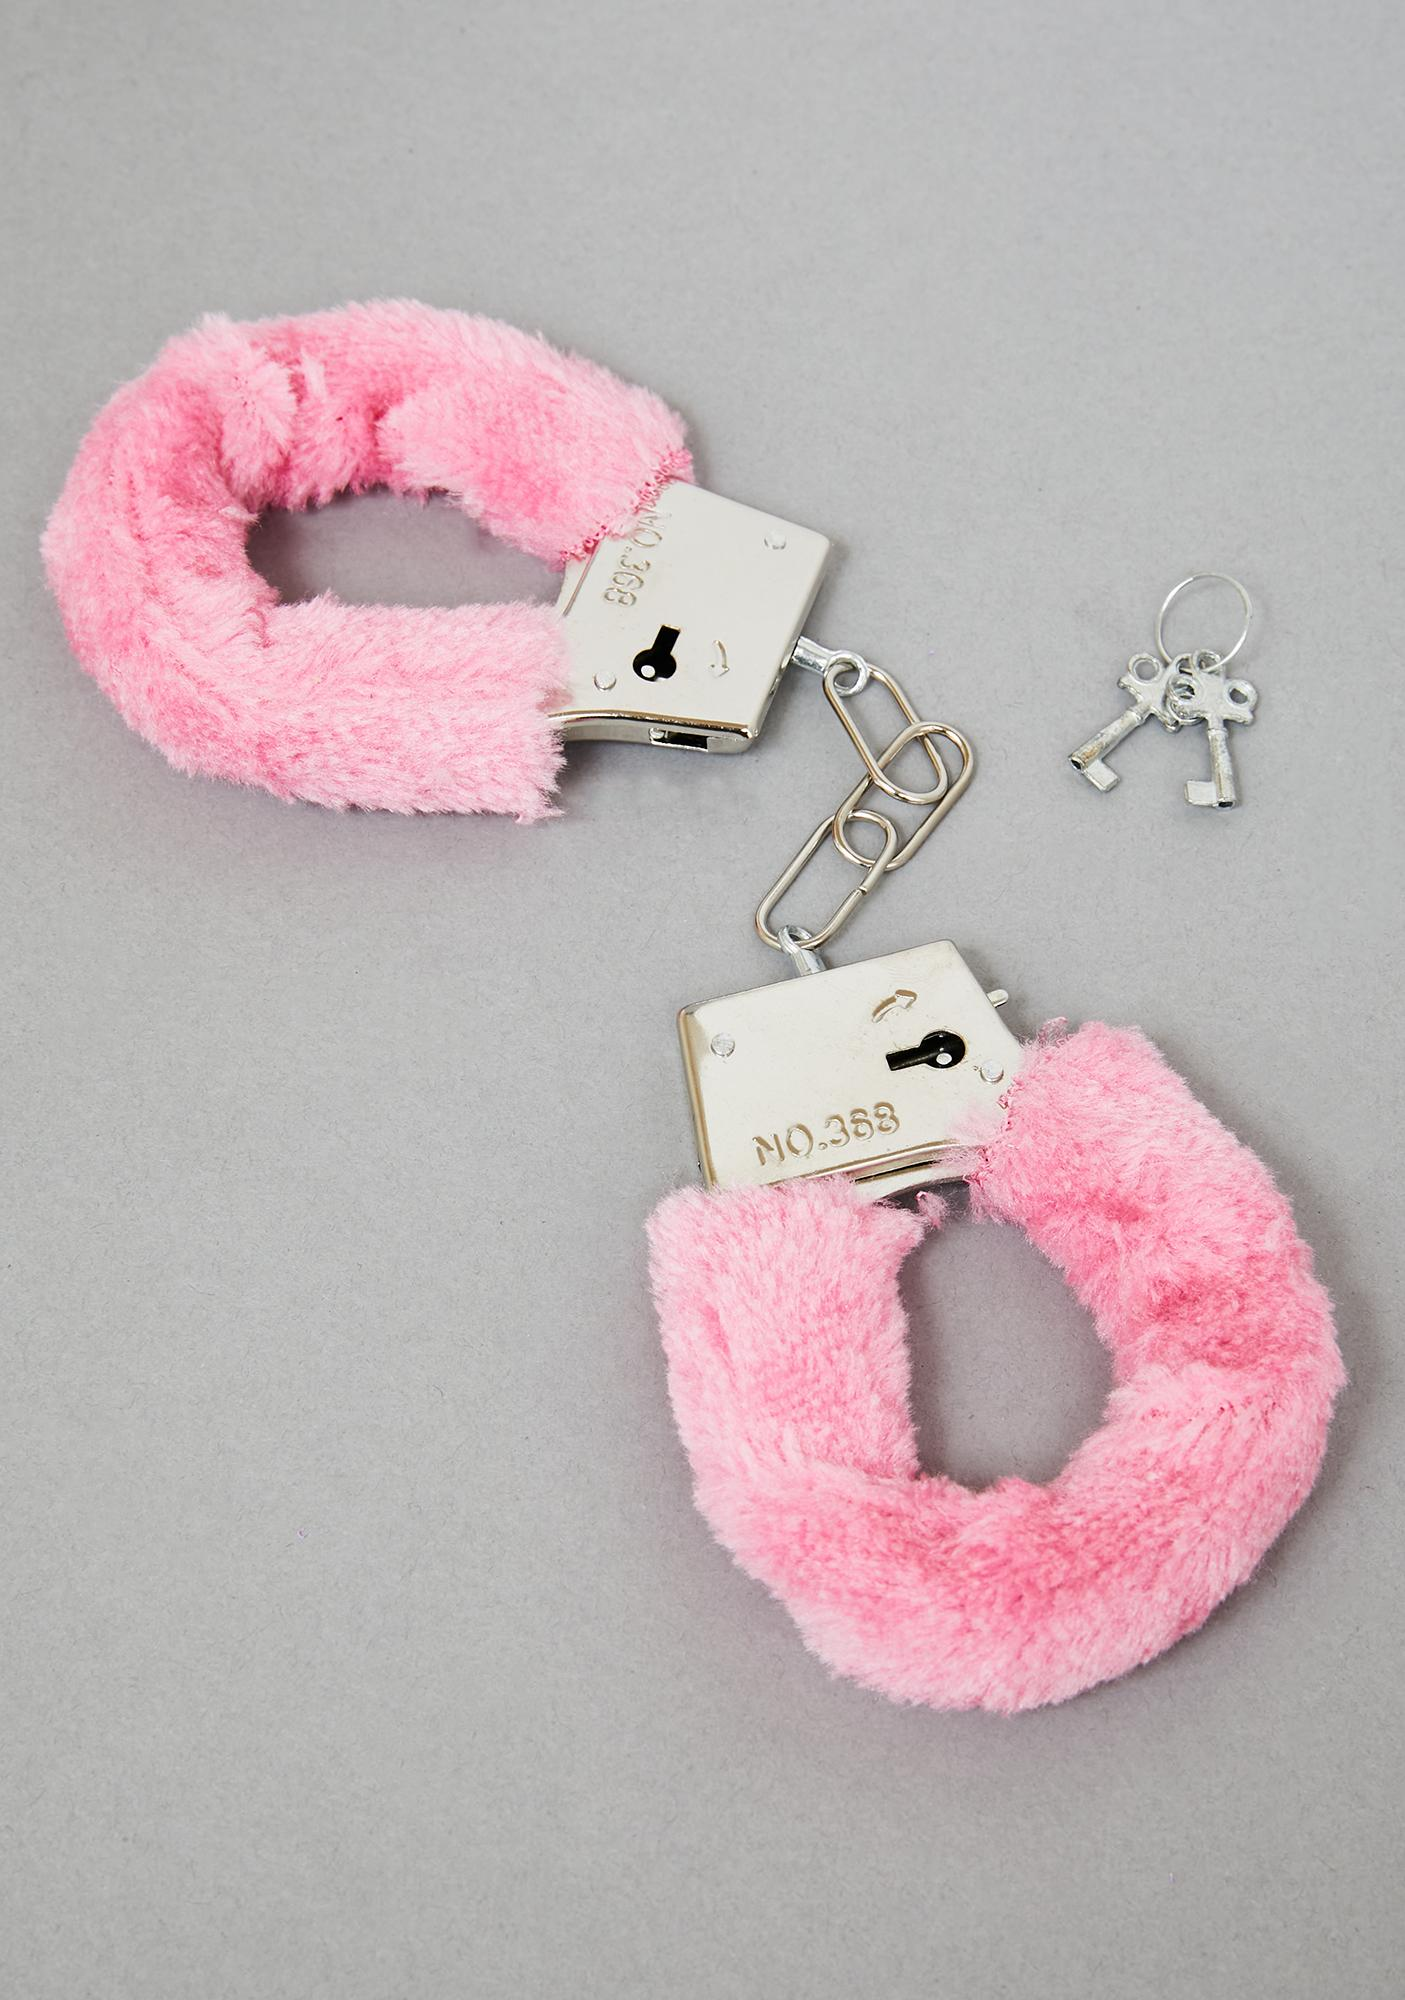 I've Been Bad Fuzzy Handcuffs